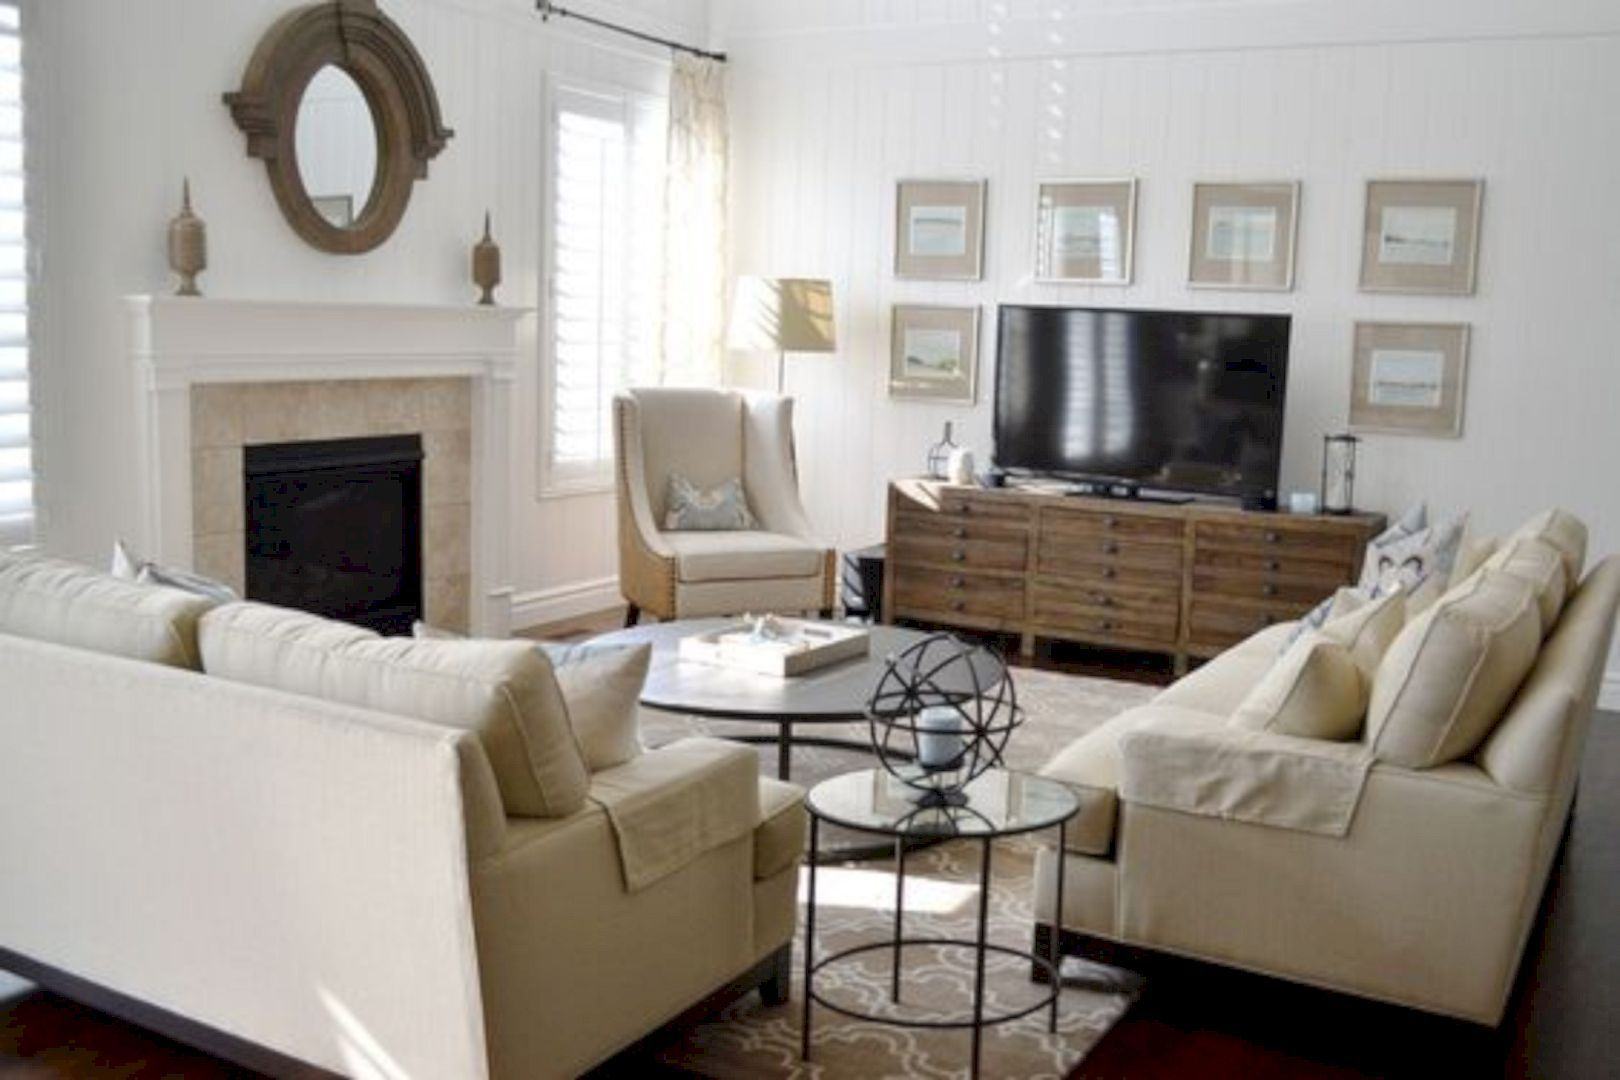 15 Living Room Furniture Layout Ideas with Fireplace to ...